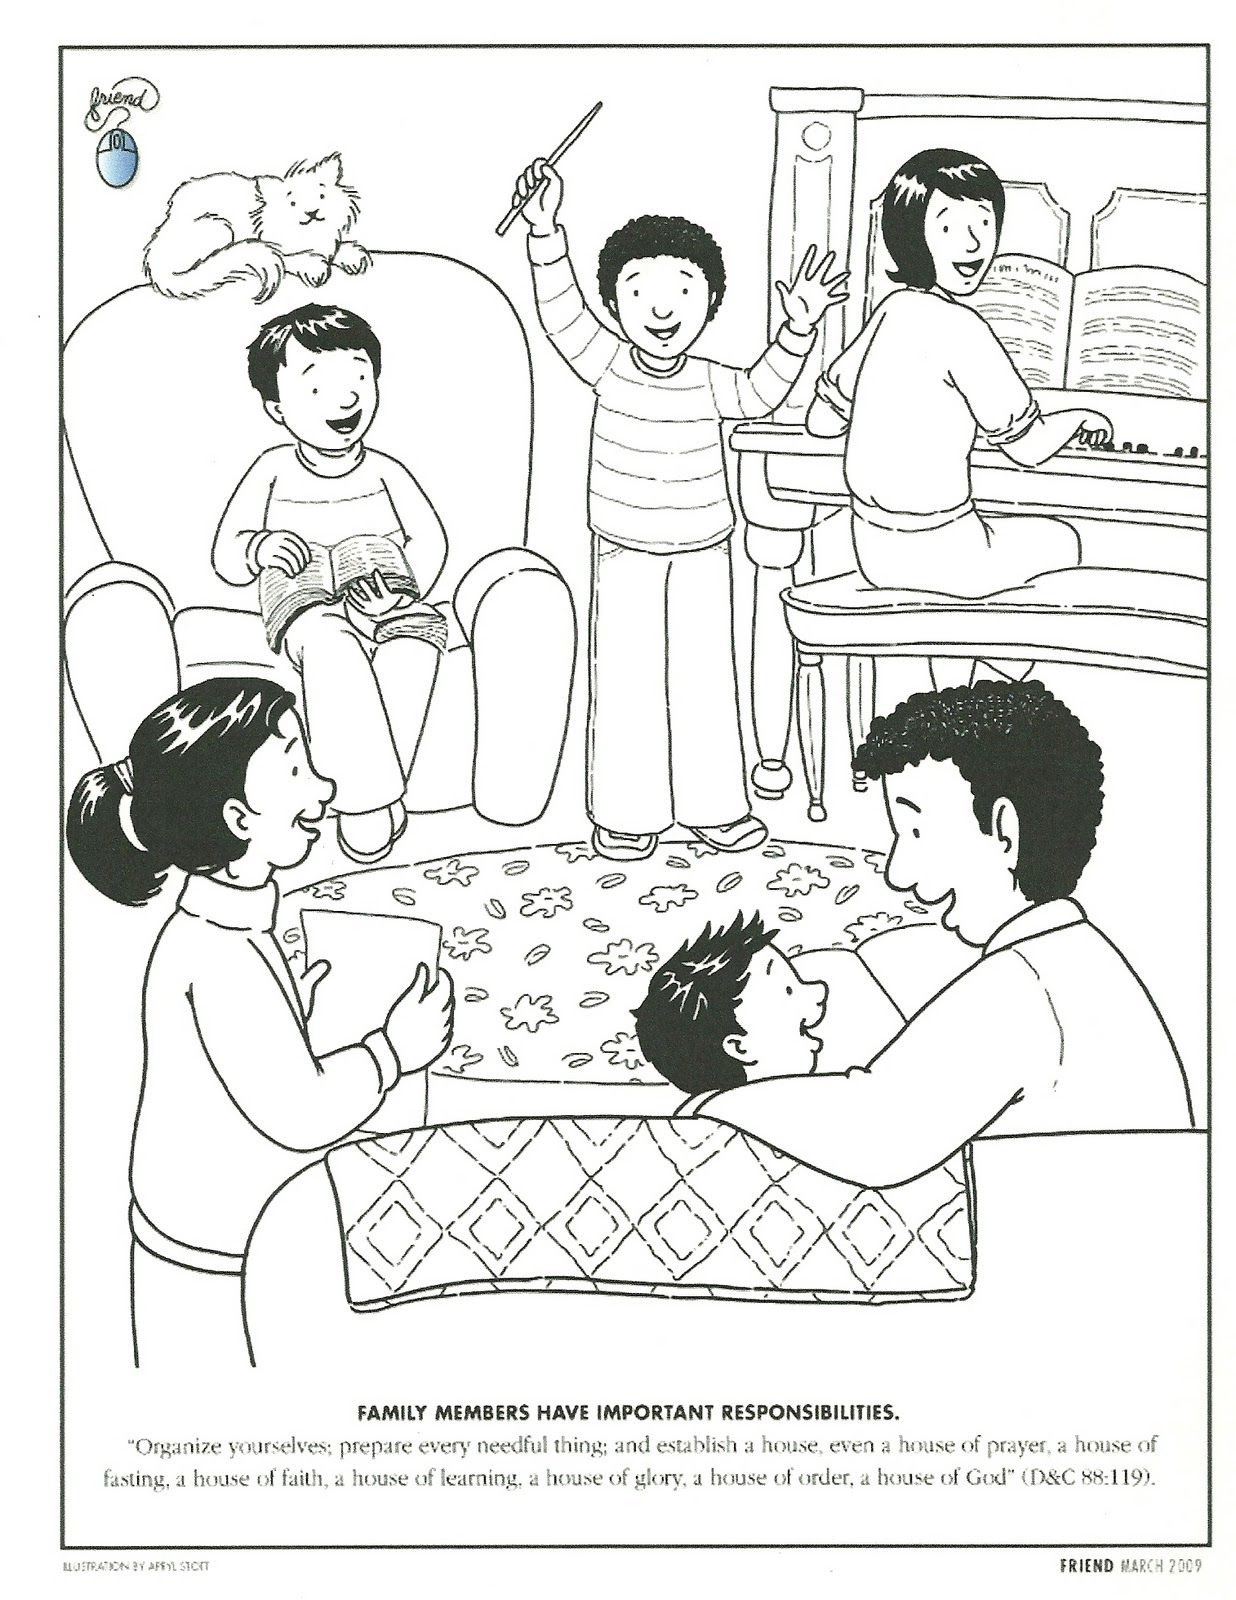 Primary 2 Manual Lesson 6 We Have Special Families Journal Page